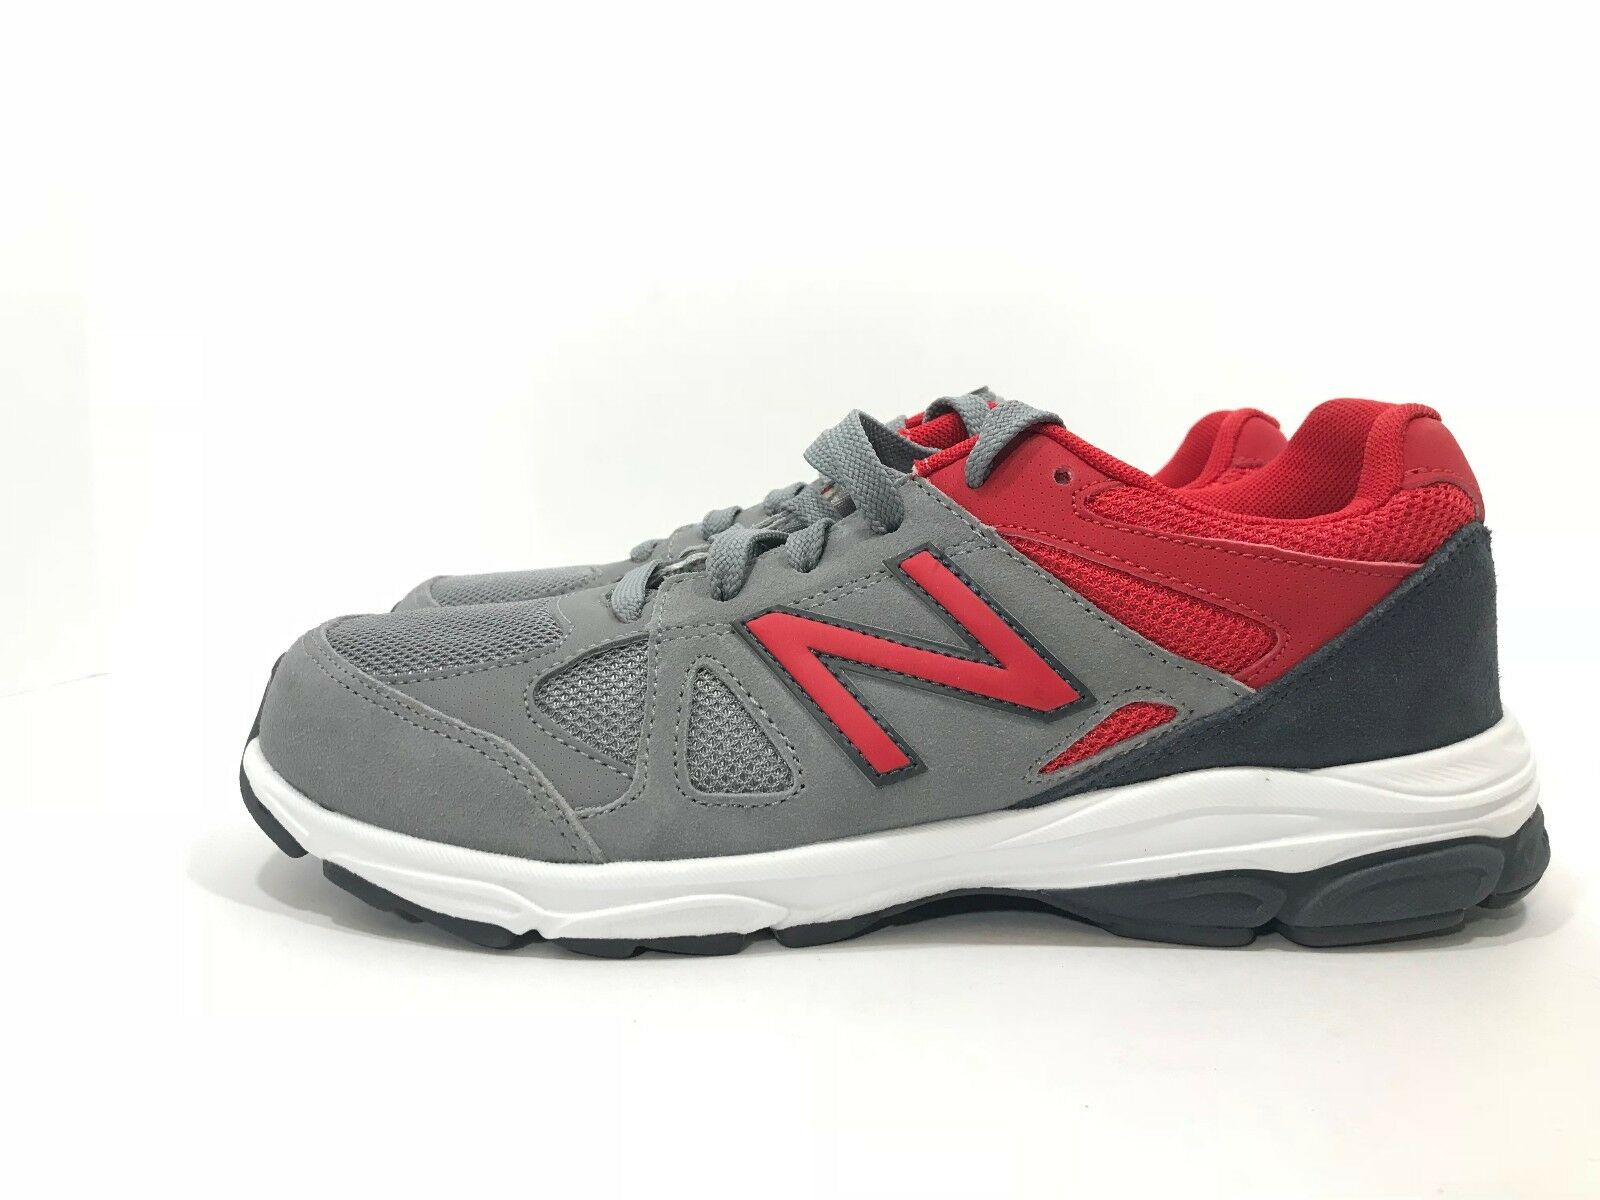 New Balance 888 Grey Red Men's Lightweight Sneakers shoes Size 6.5 NEW